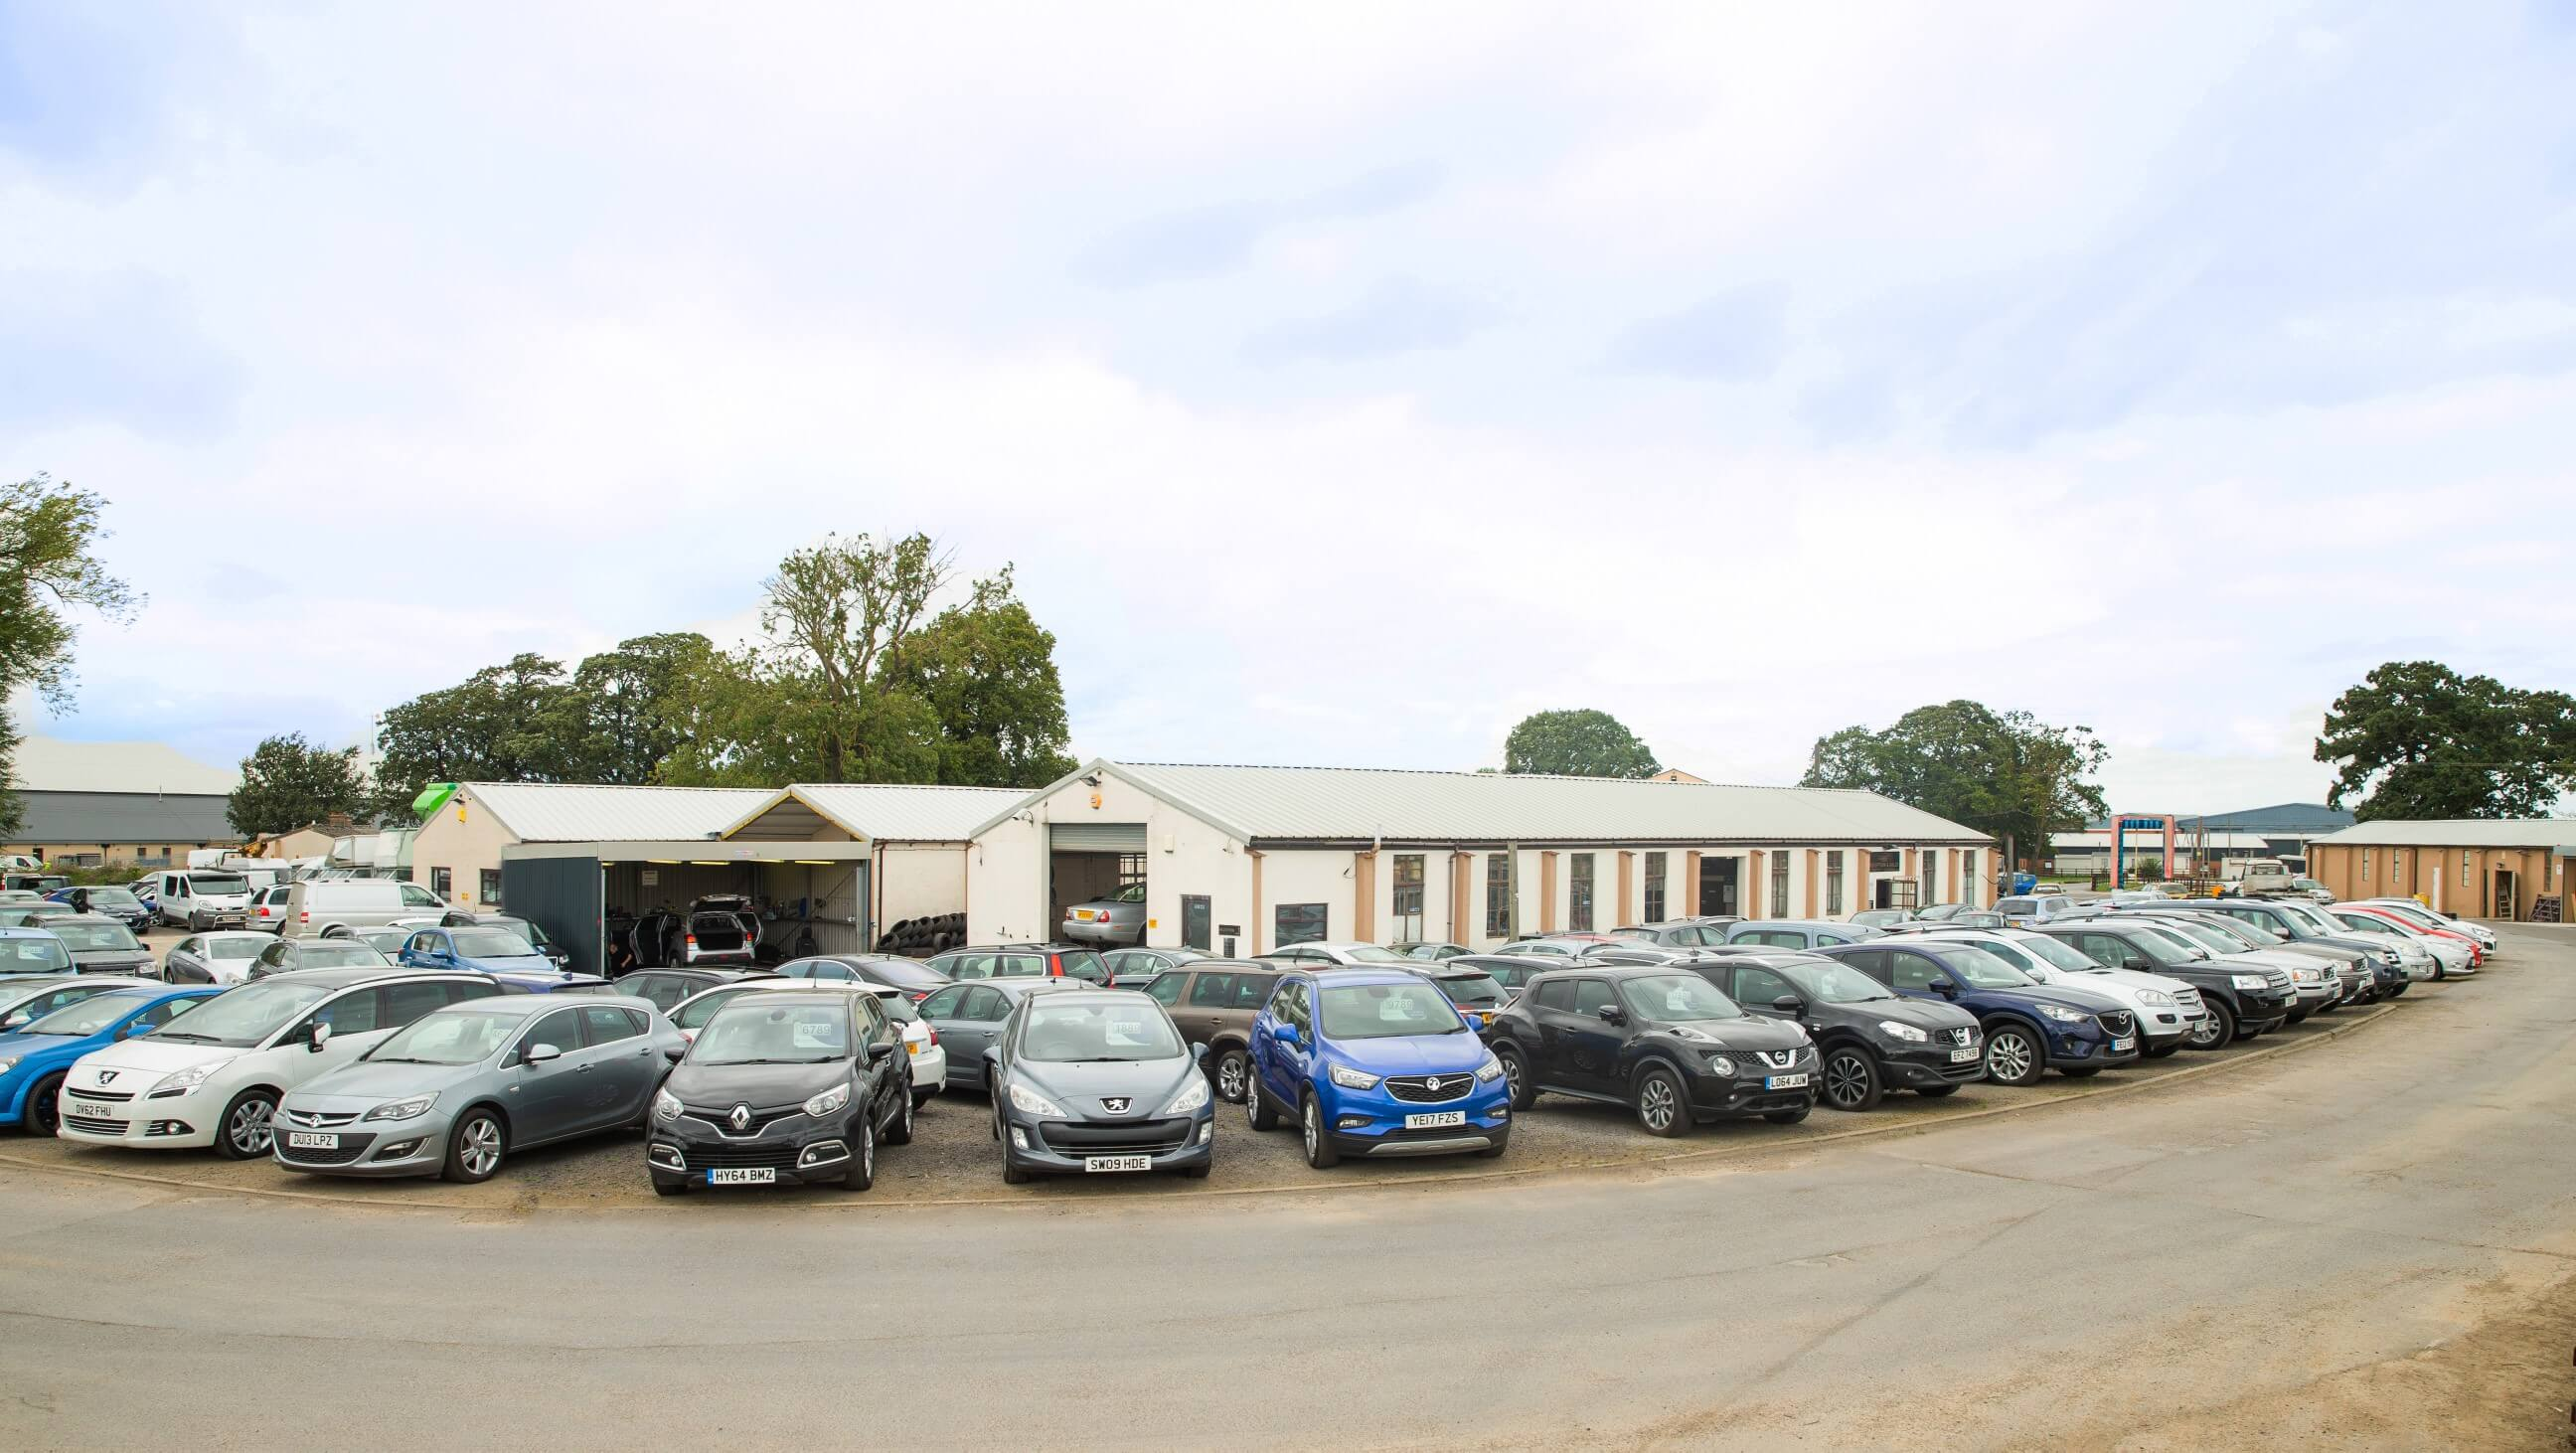 Stock On Display At Gold Cars Limited Used Cars For Sale In Evesham - Gold Cars Ltd